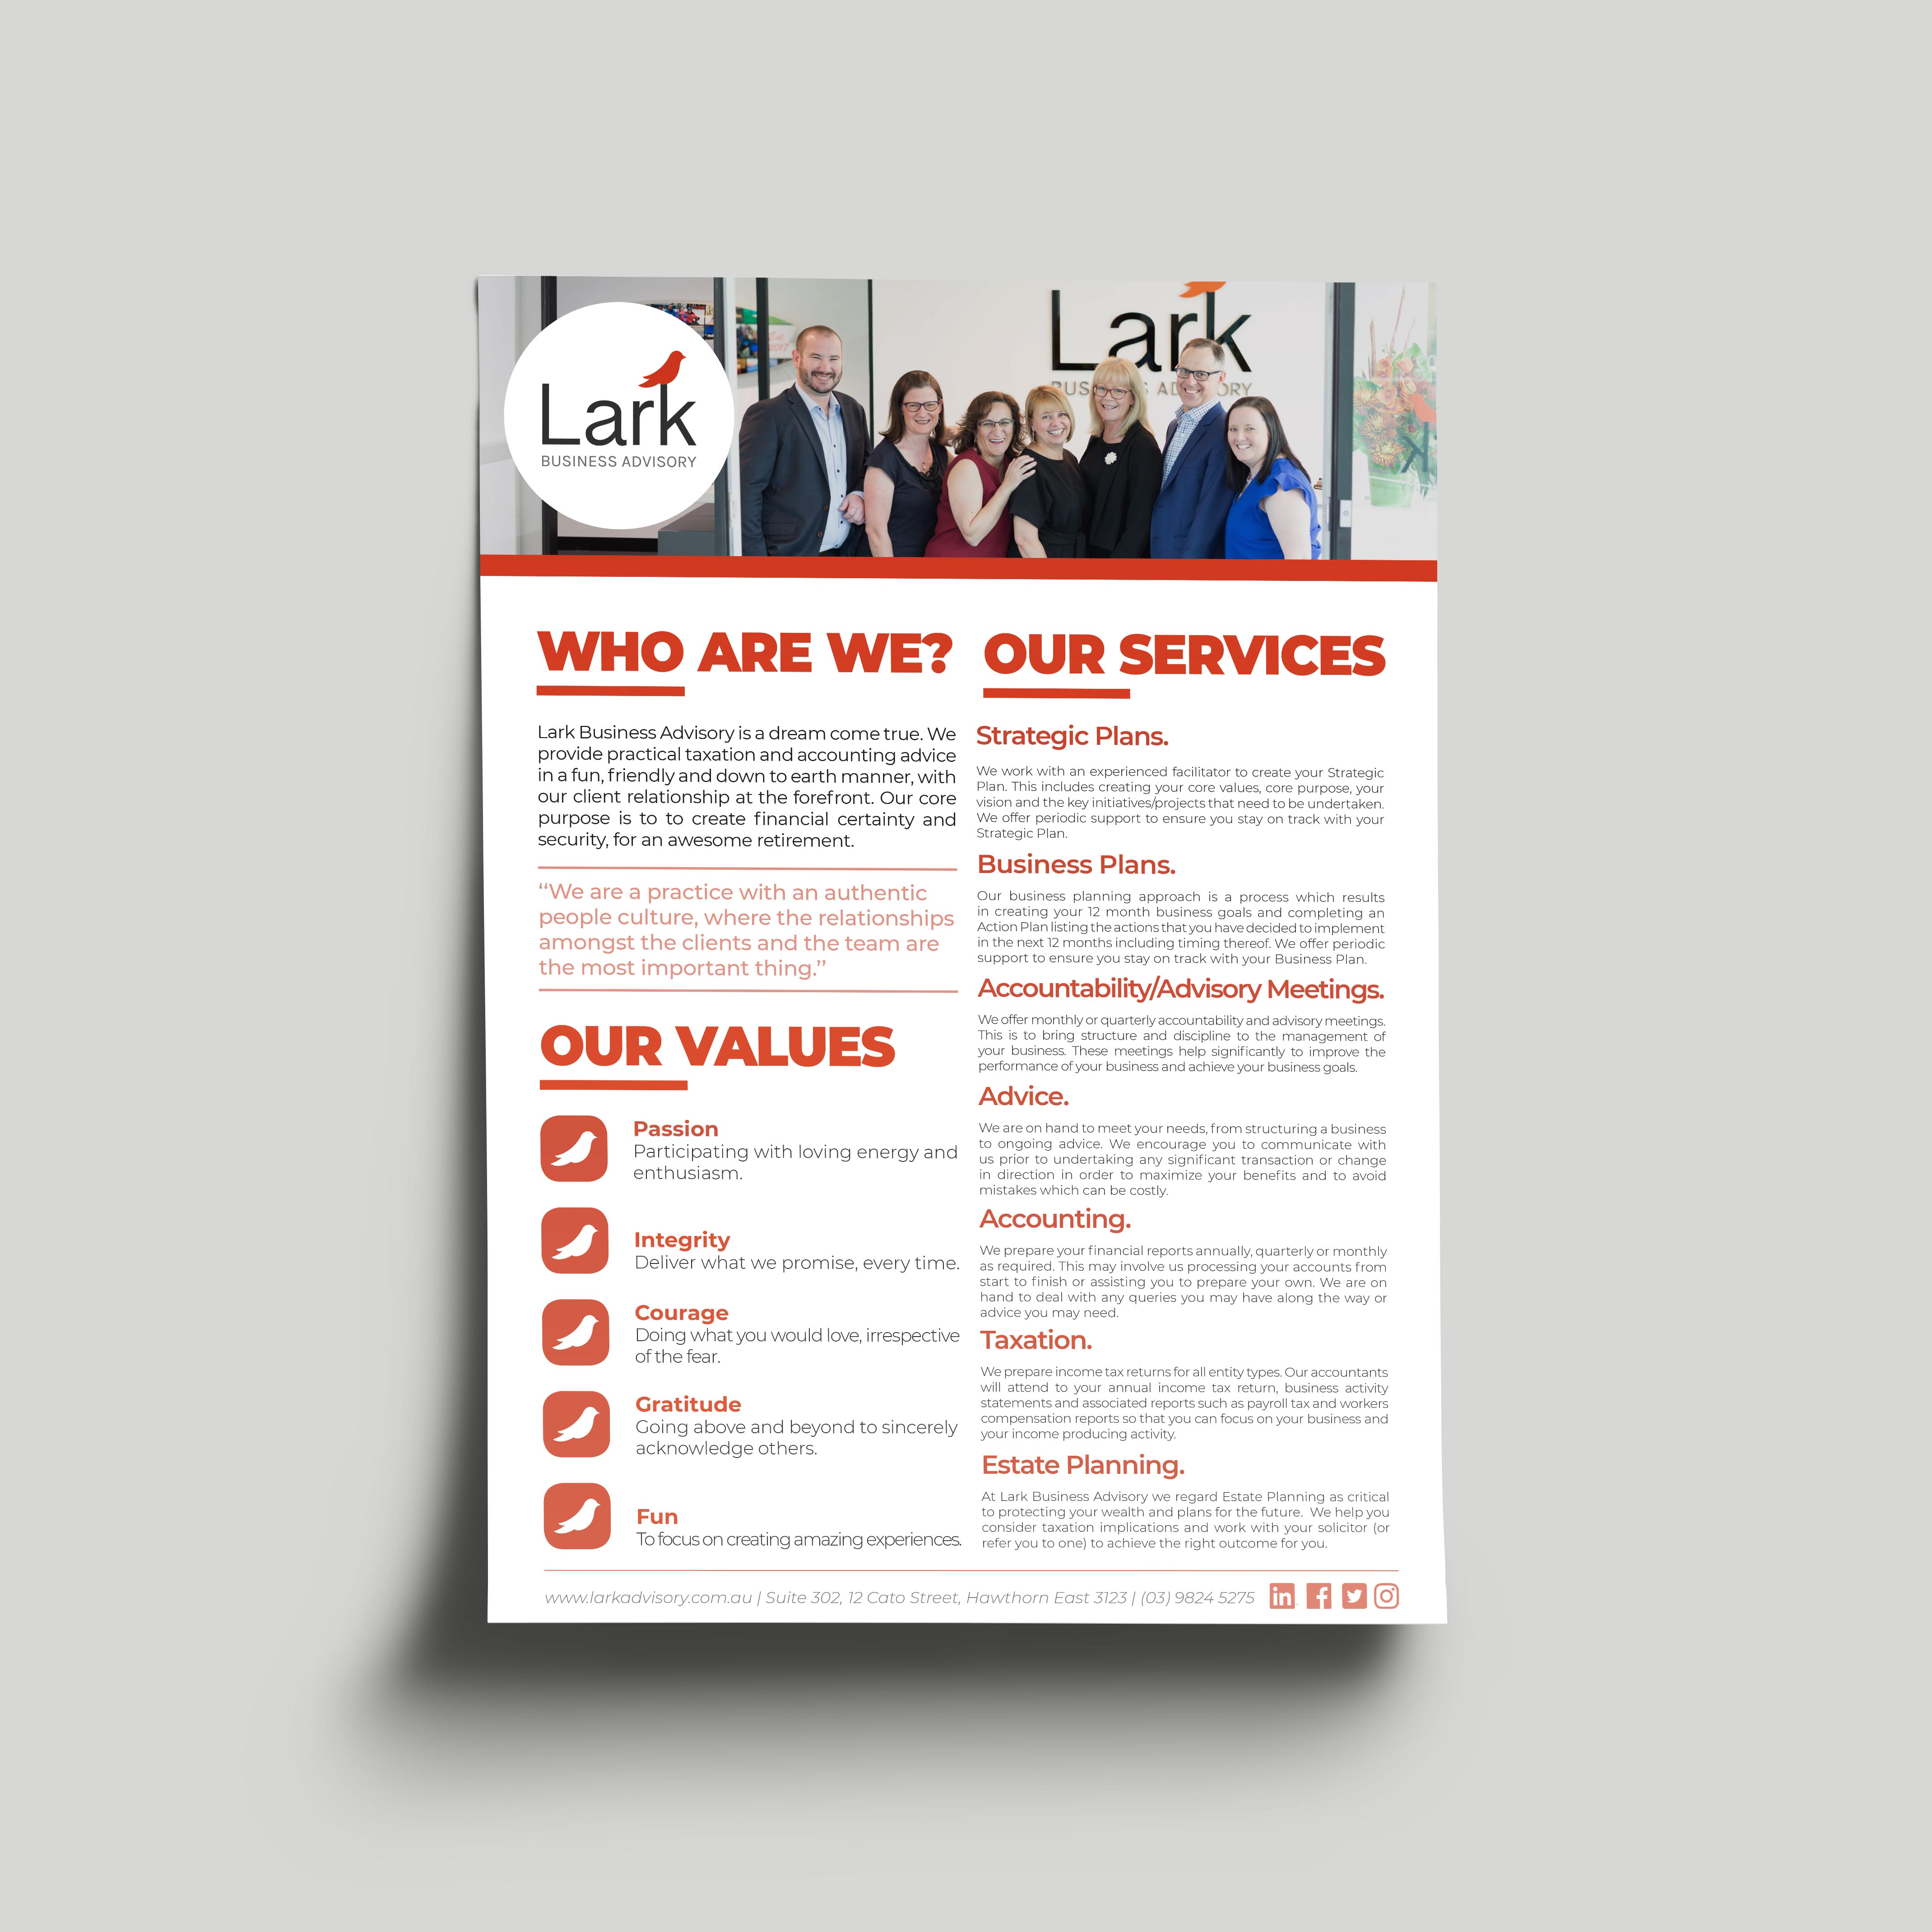 Lark Business Advisory - Digital PDF